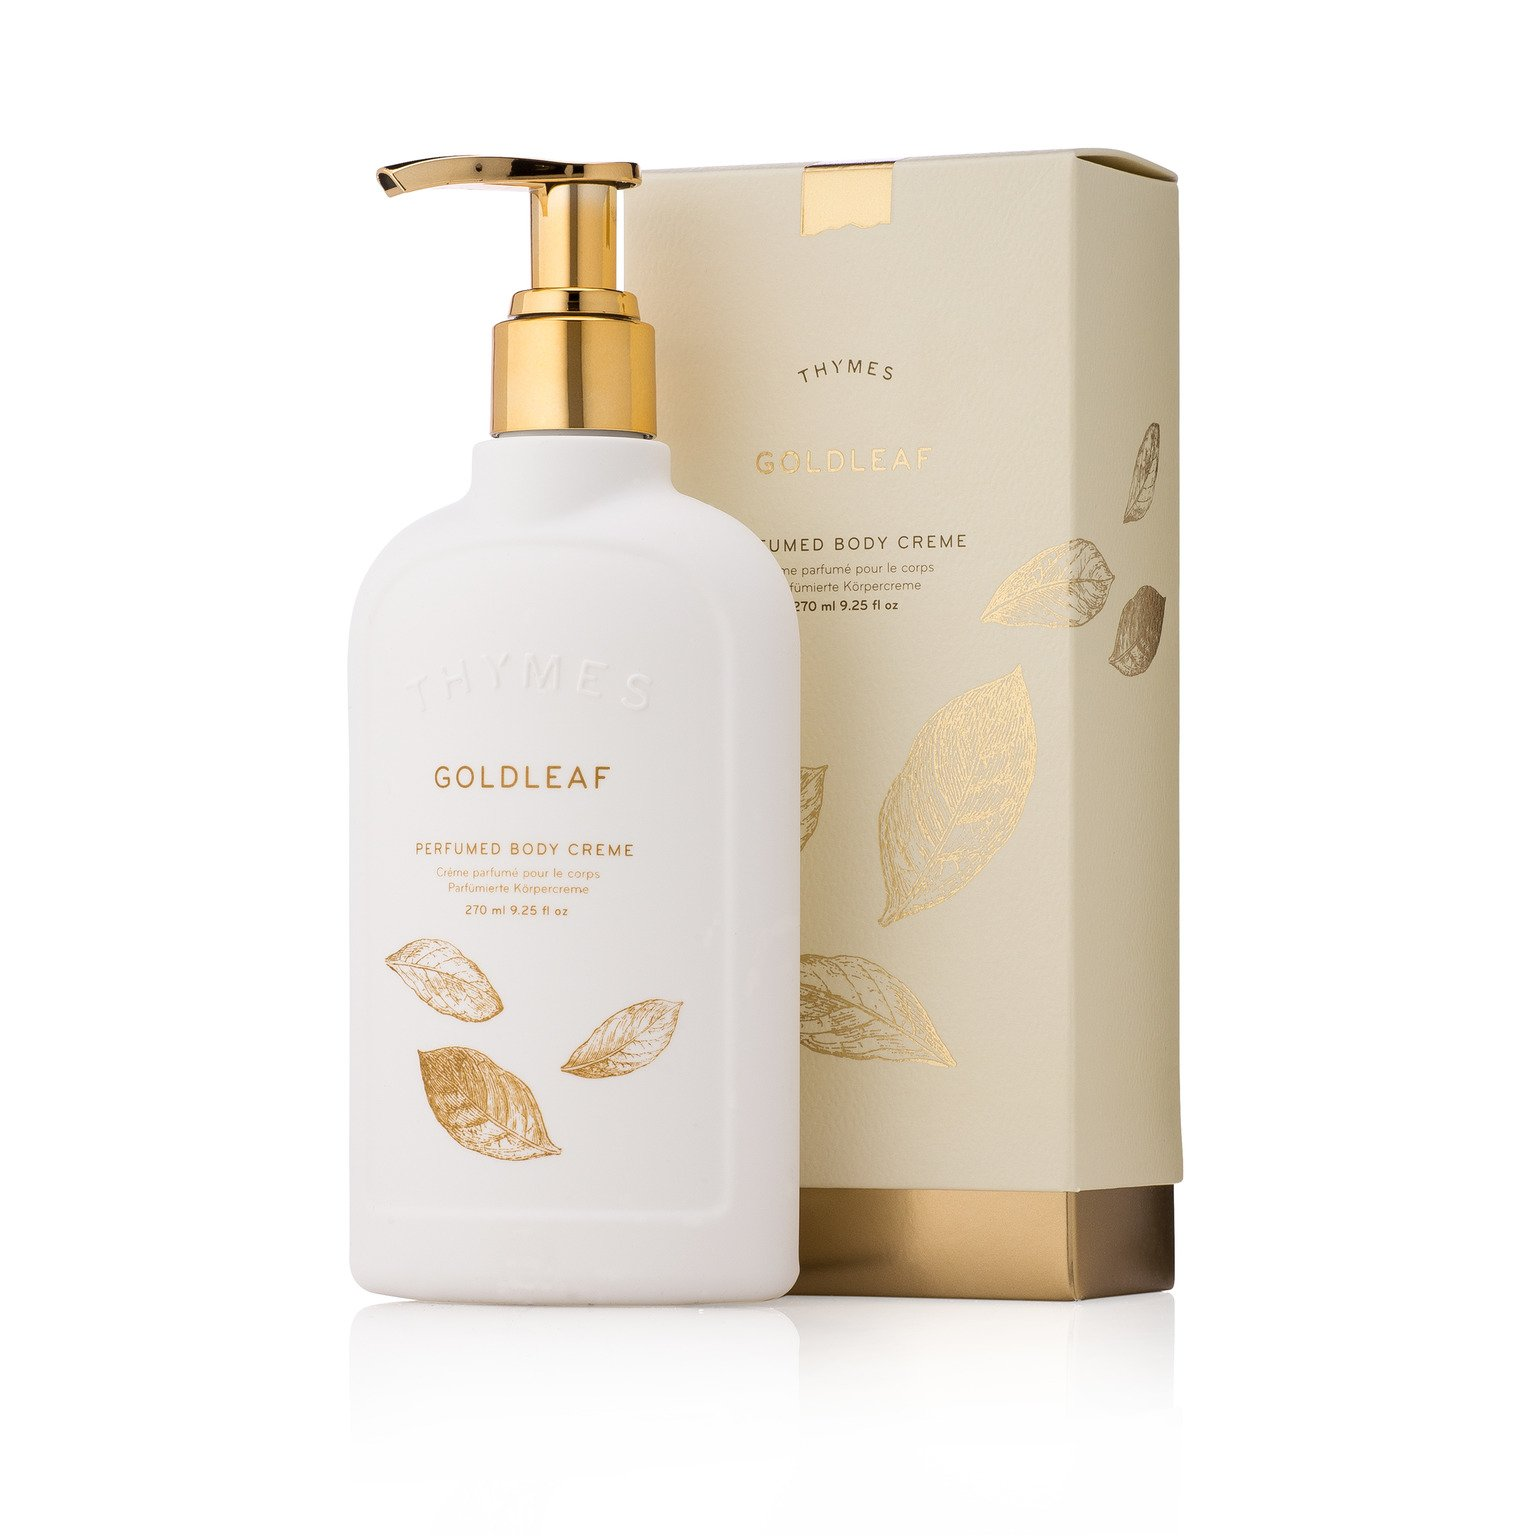 Thymes - Goldleaf Perfumed Body Crème with Pump - Deeply Moisturizing Floral Body Lotion - 9.25 oz by Thymes